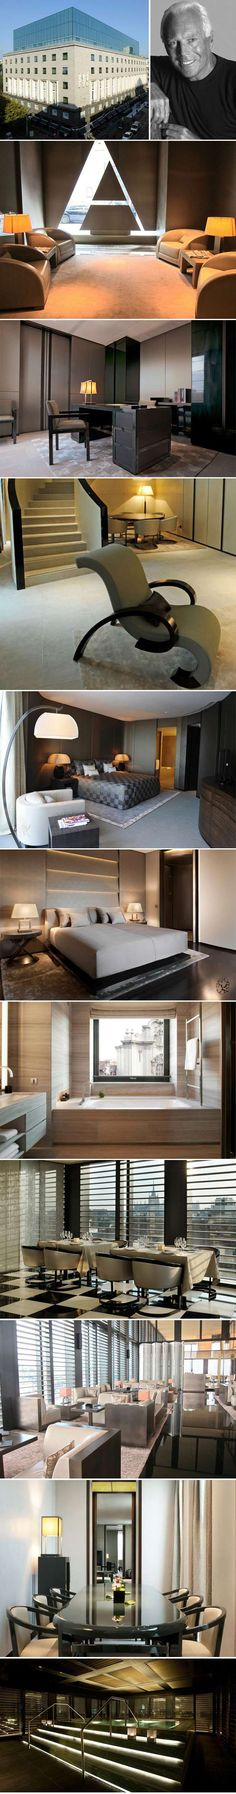 Armani Hotel Milano, Italy in the heart of the Fashion District. Look at the beautiful furnitures all designed by Giorgio Armani. Hotel Lounge, Hotel Spa, Armani Hotel Dubai, Restaurant Hotel, Interior Exterior, Interior Design, Public Hotel, Hotel Architecture, Hotel Interiors